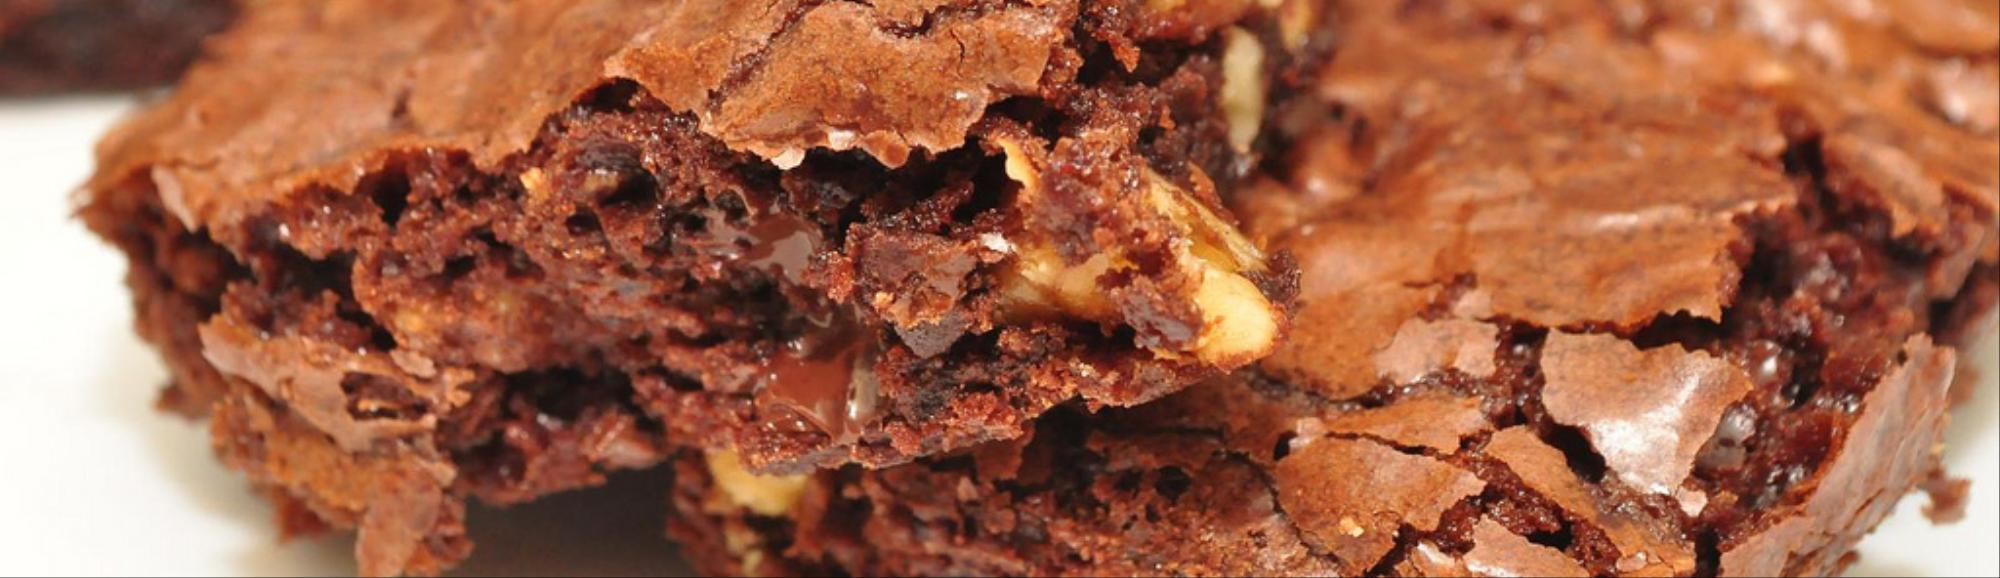 A Texas Teen Is Facing Life in Prison Over Hash Oil Brownies